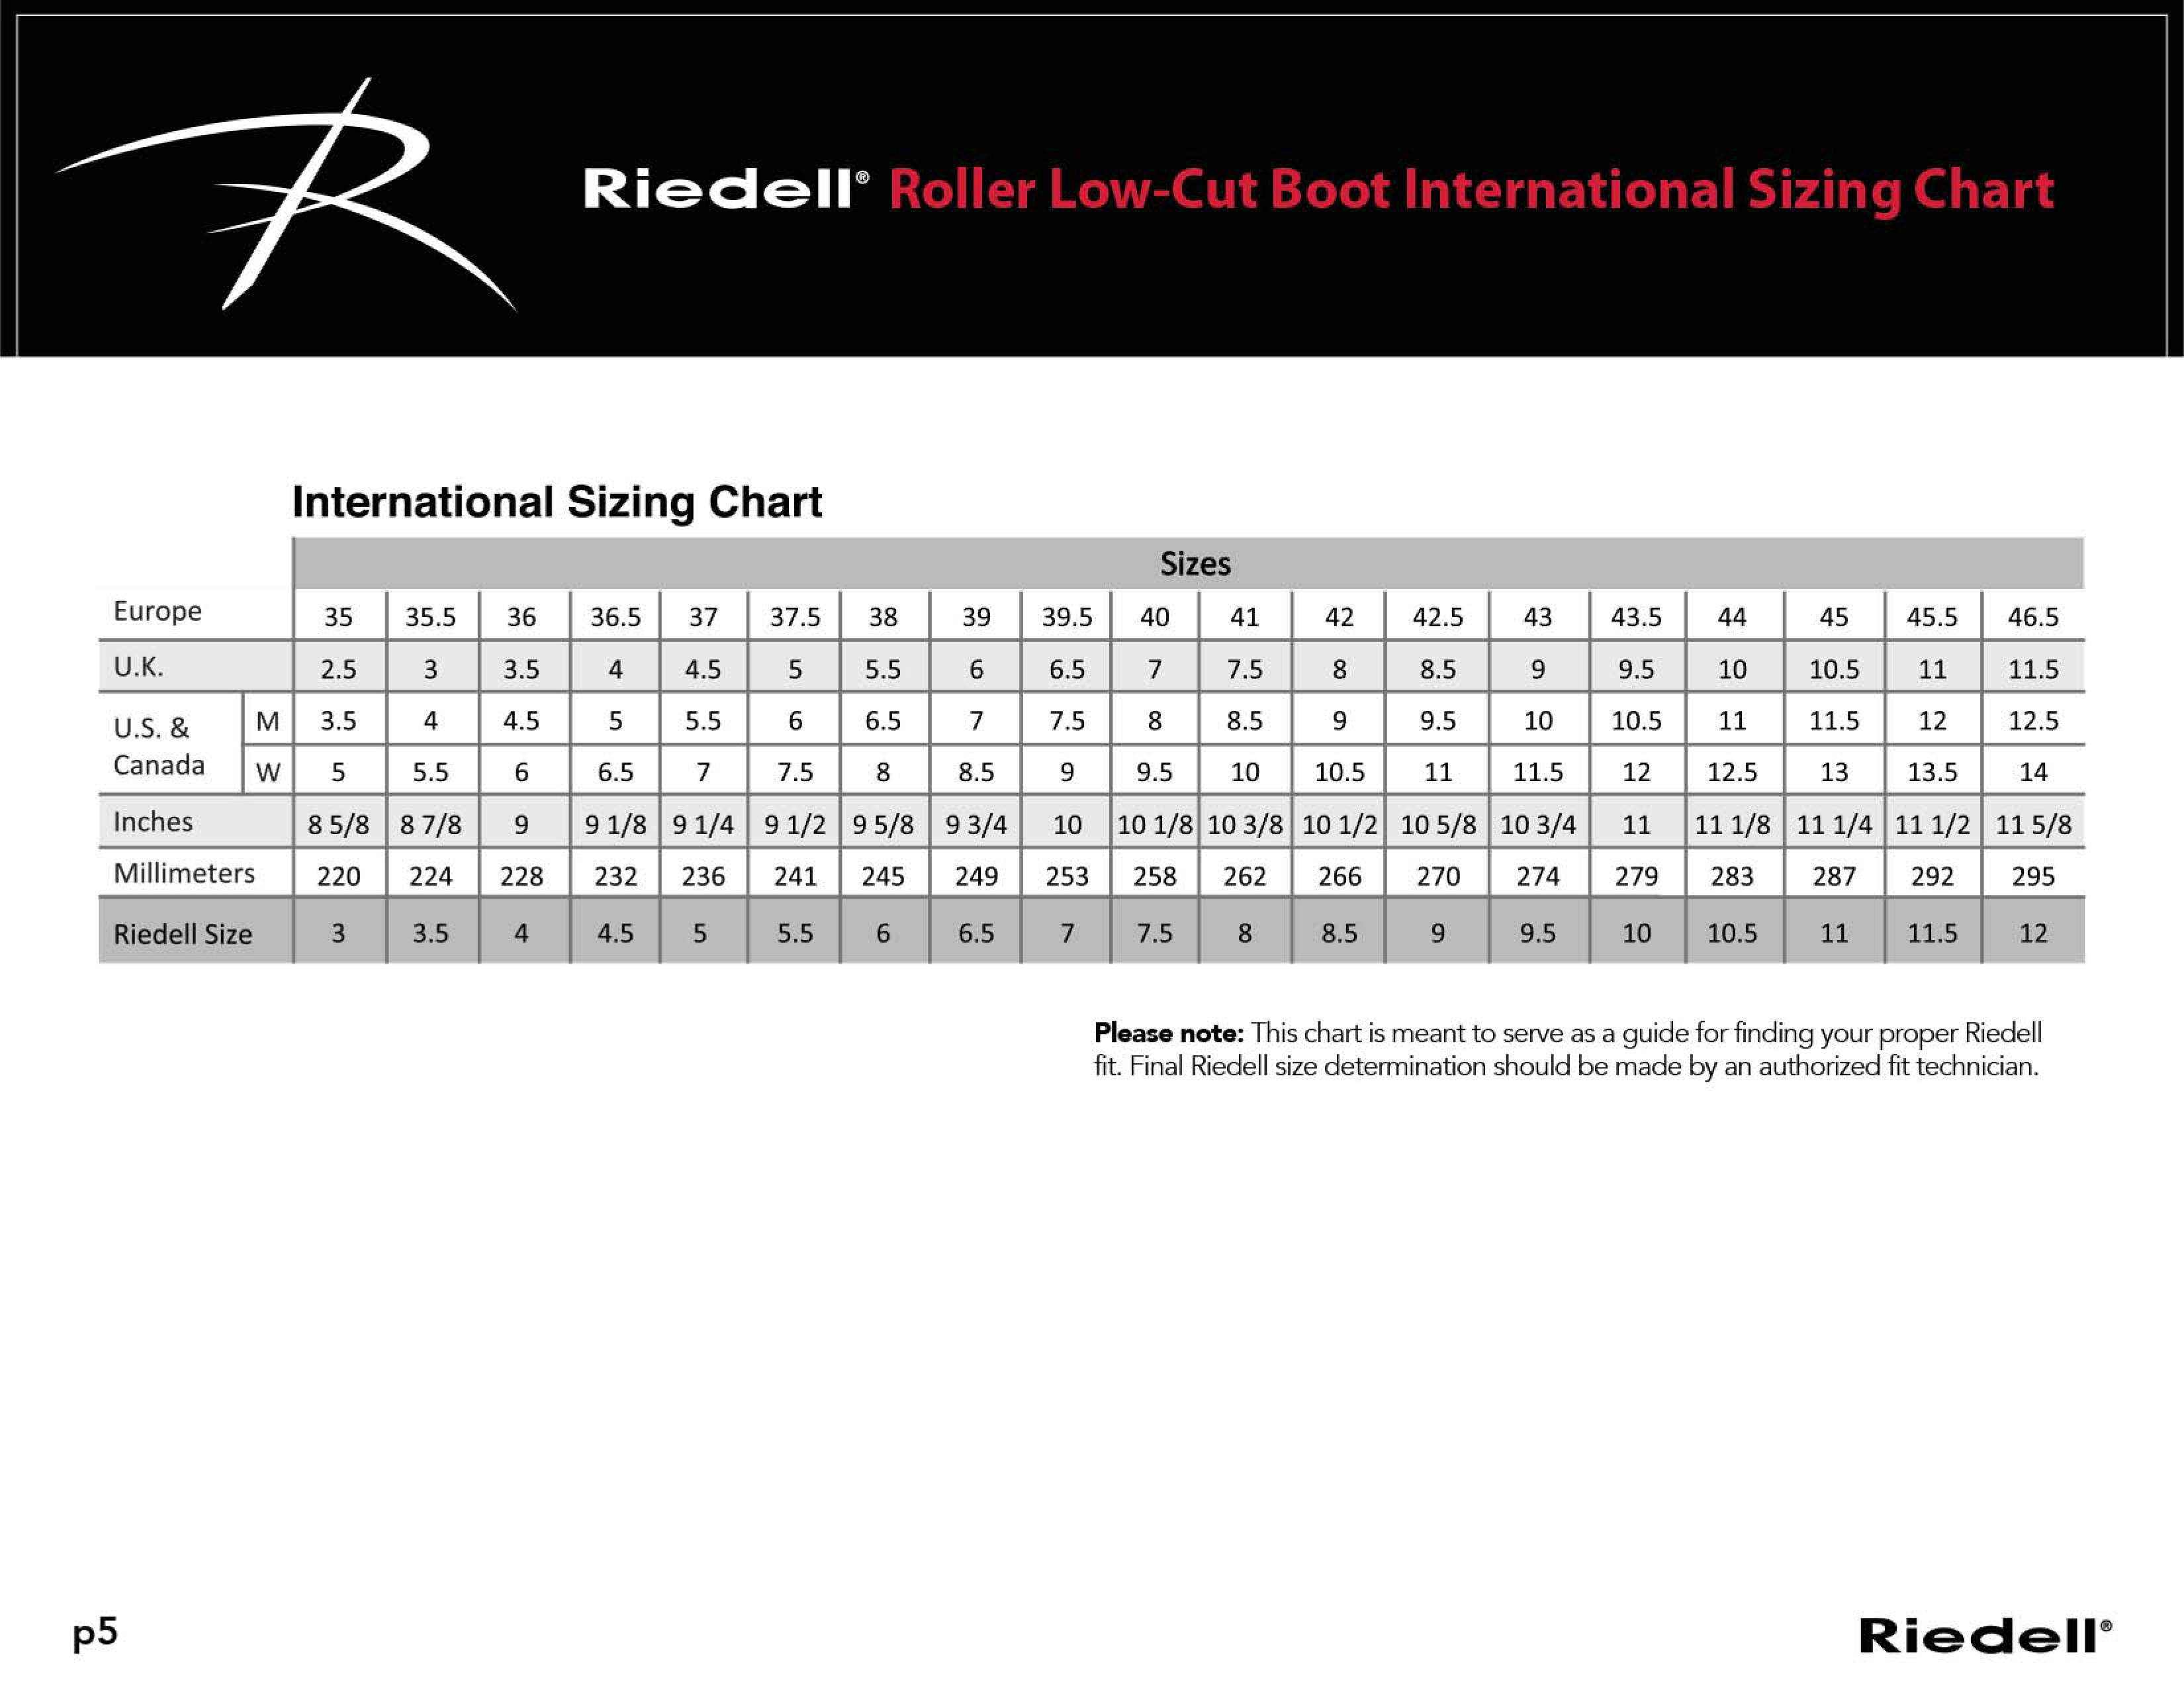 riedell-roller-sizing-guide-page-5.jpg